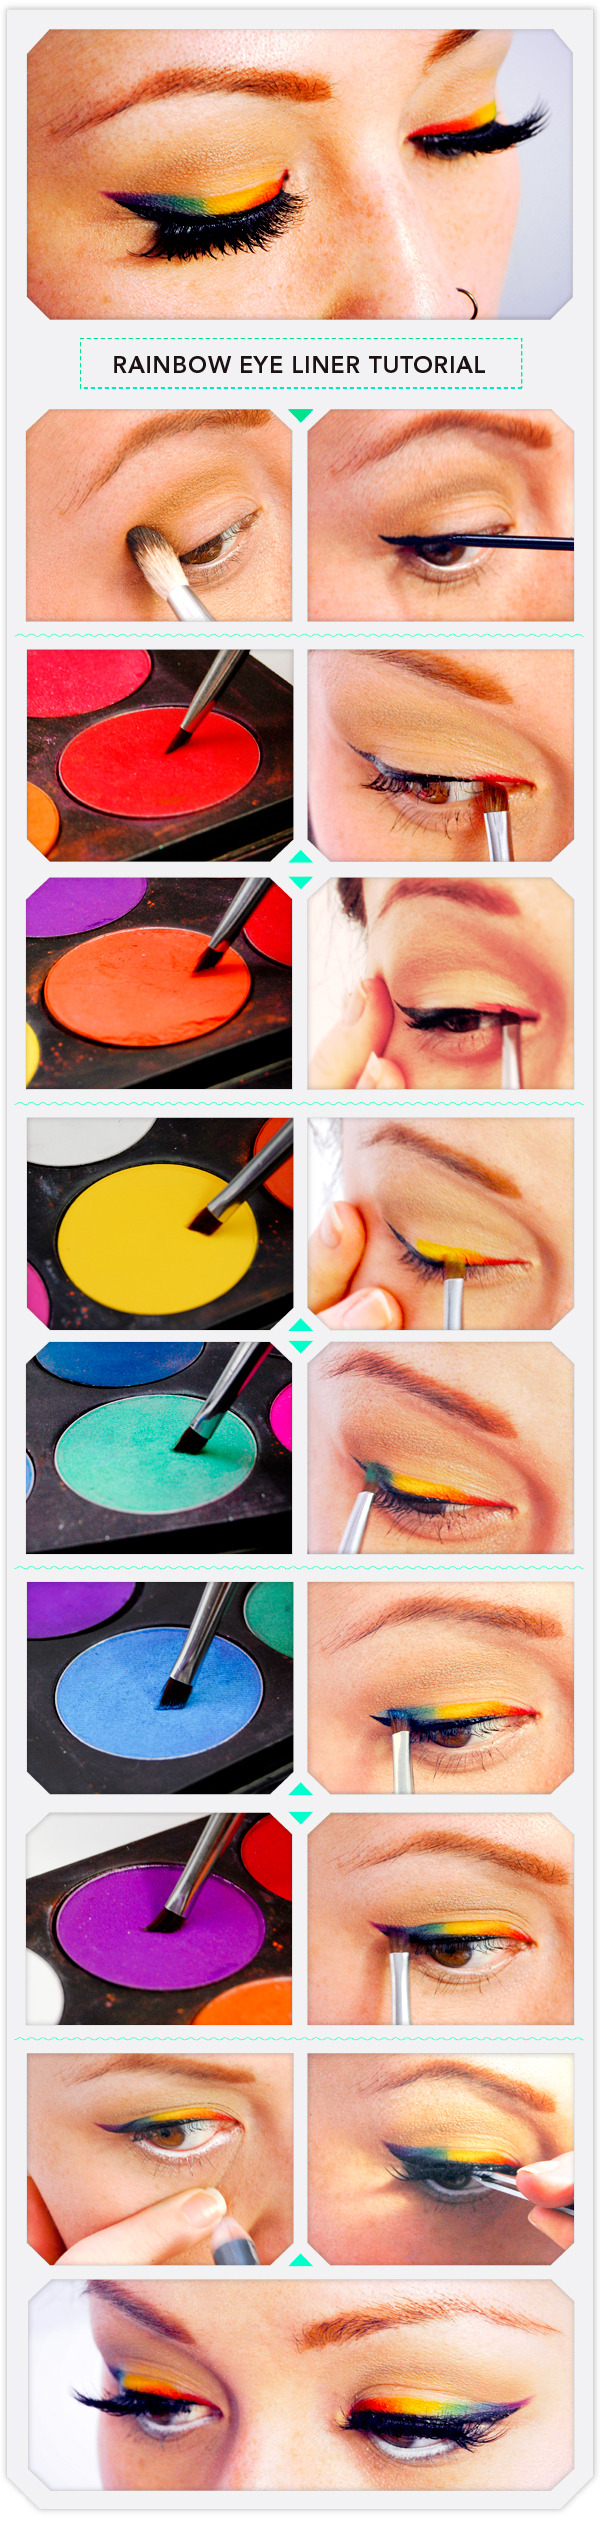 Rainbow eye liner tutorial beautylish step 1 baditri Image collections